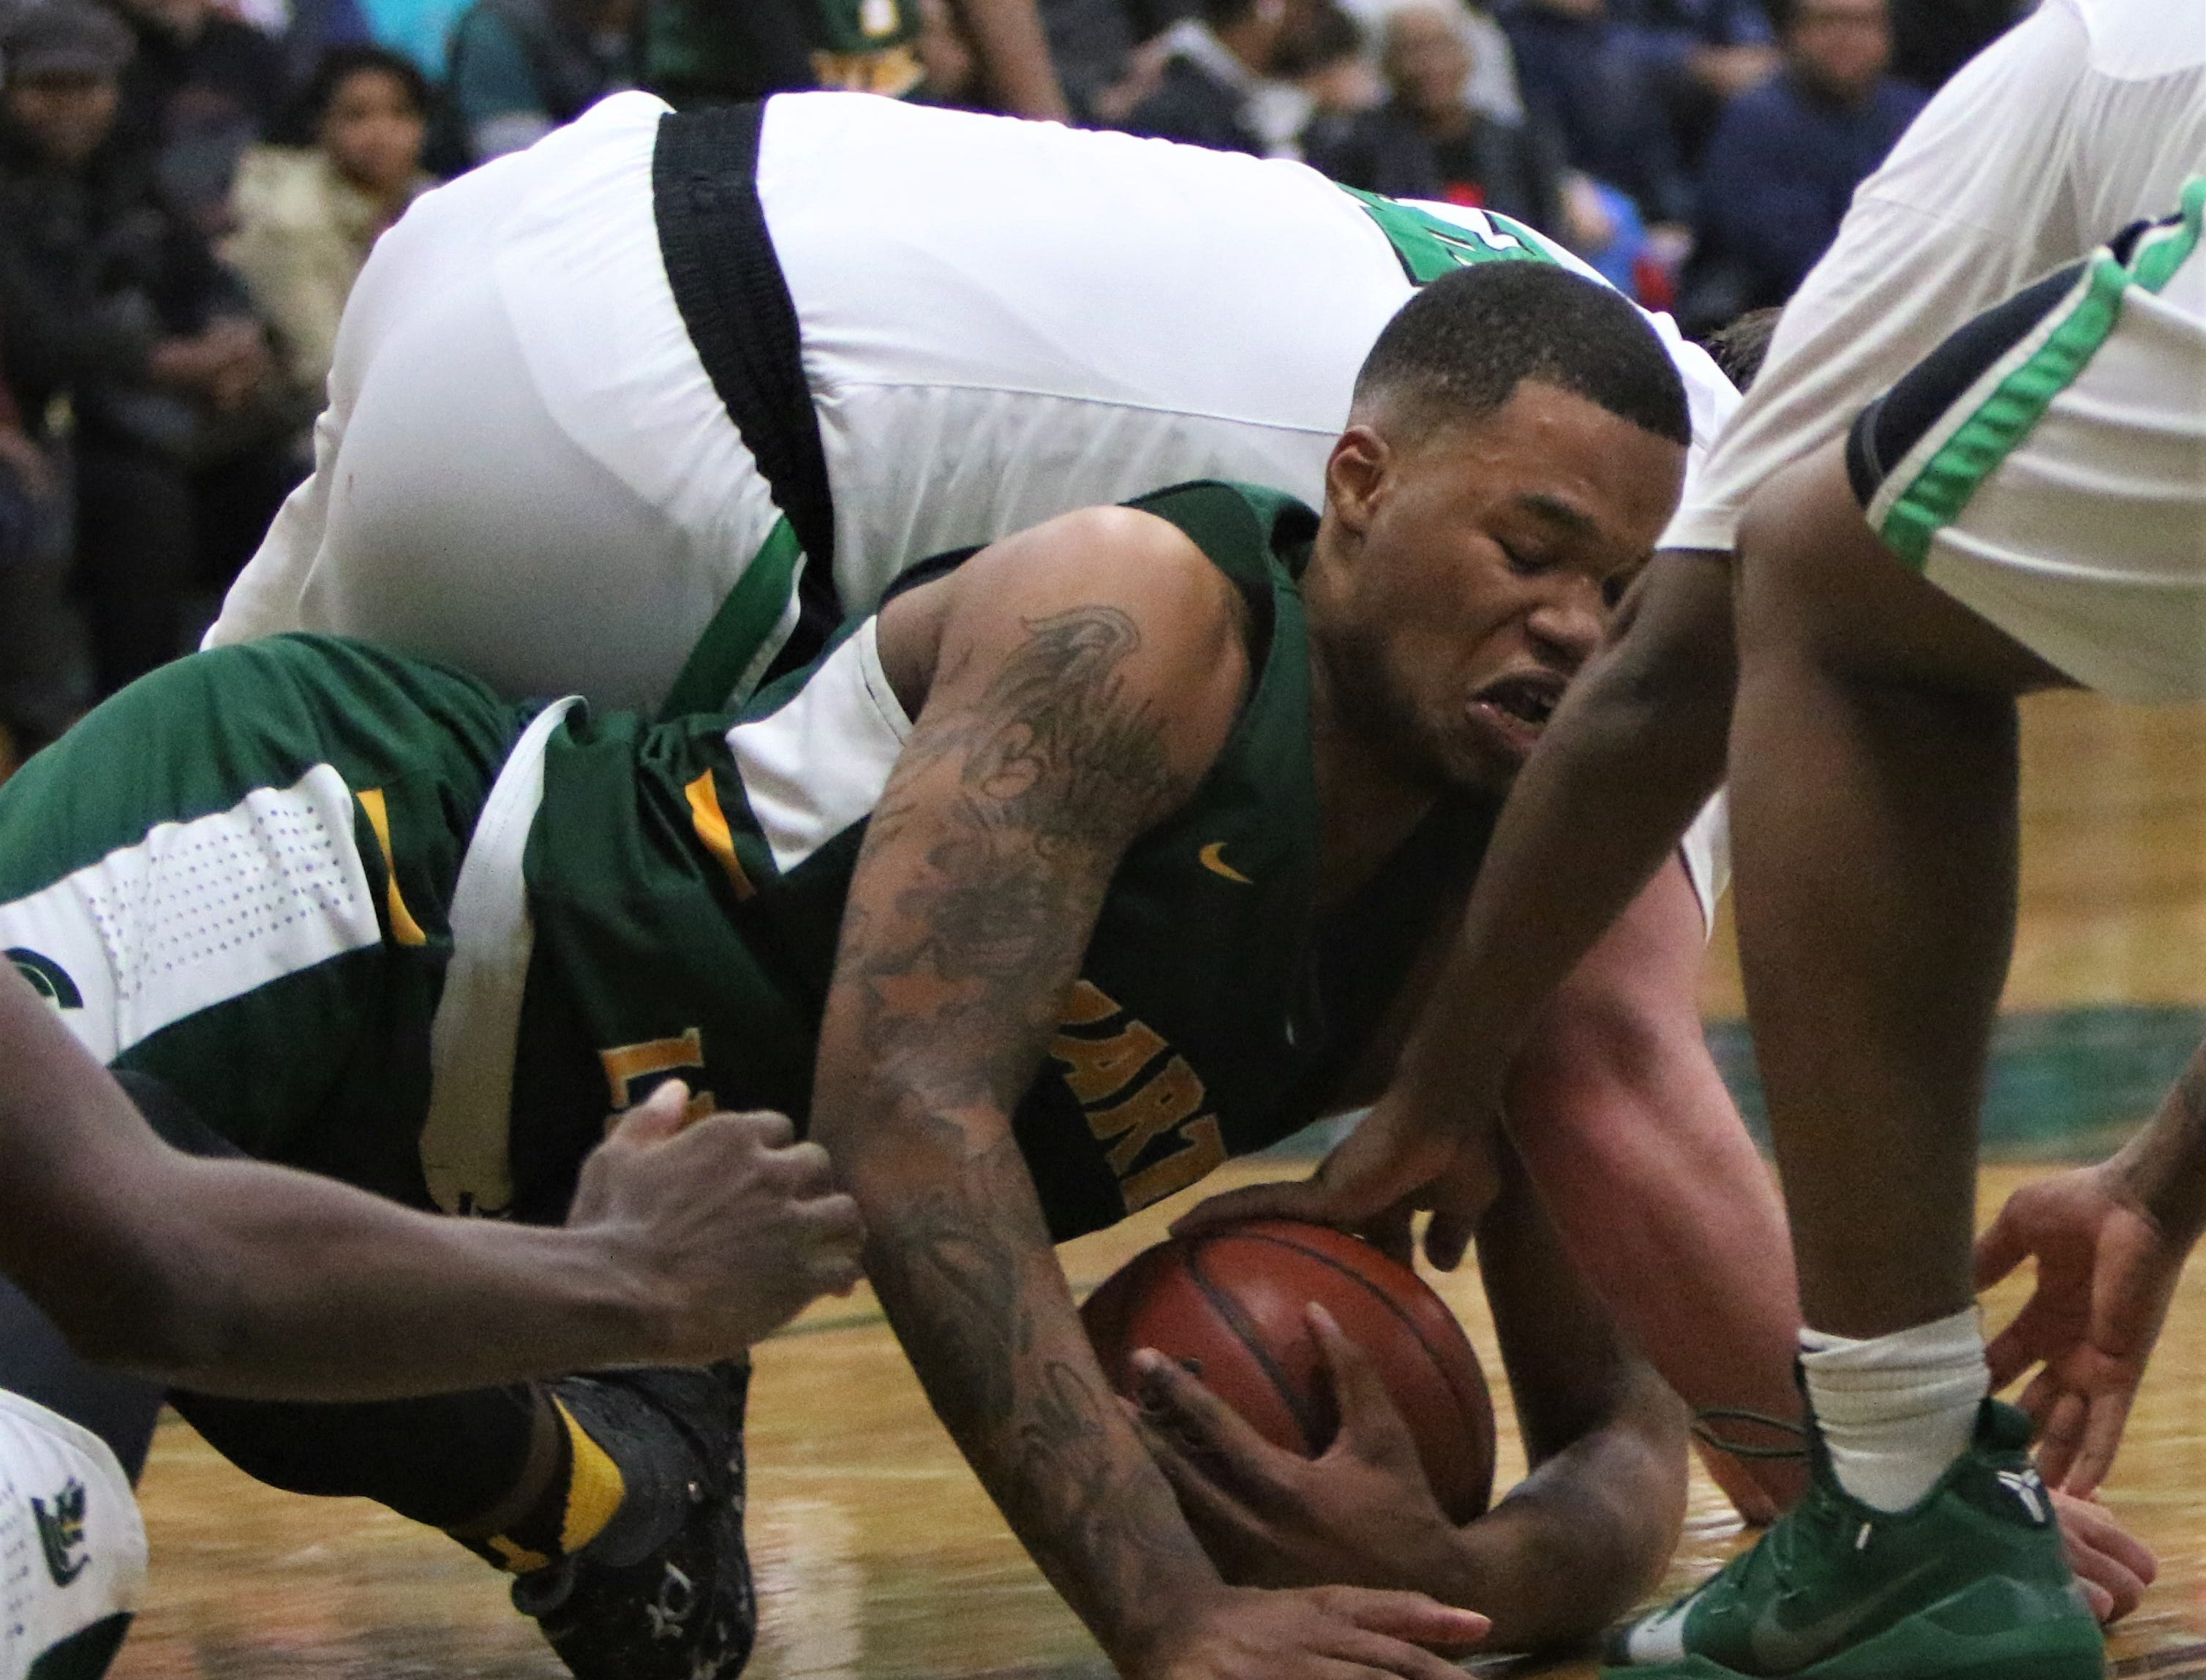 Martin Luther forward Shaun Harrison dives to corral a loose ball while surrounded by a pack of Dominican players on Jan. 15, 2019.